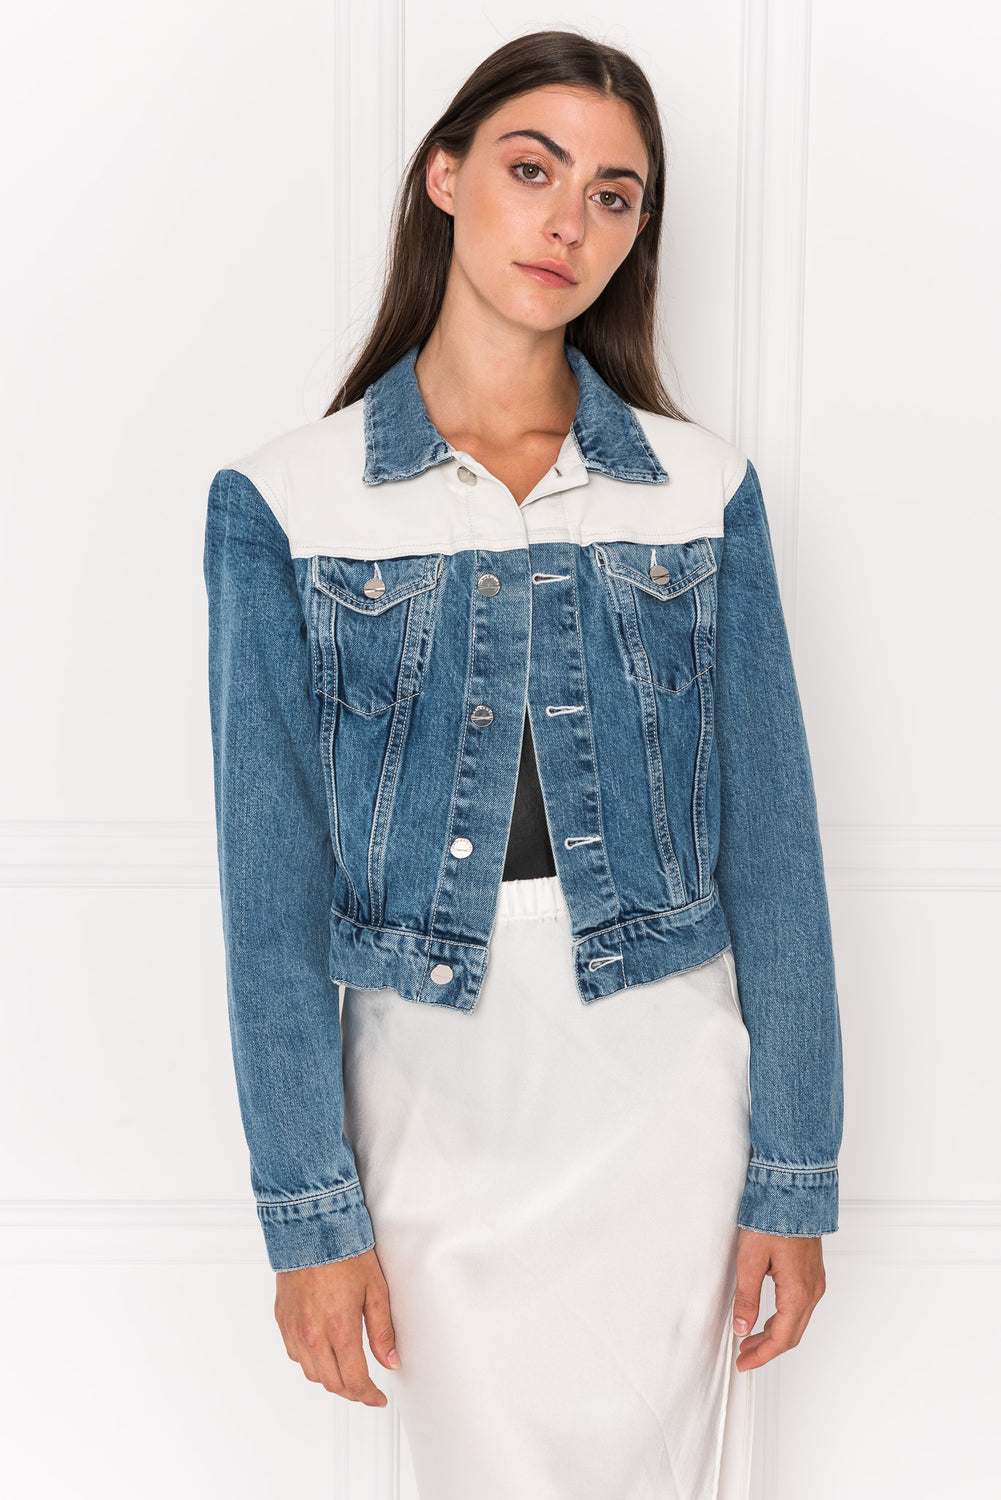 KARLY Leather Trimmed Jean Jacket